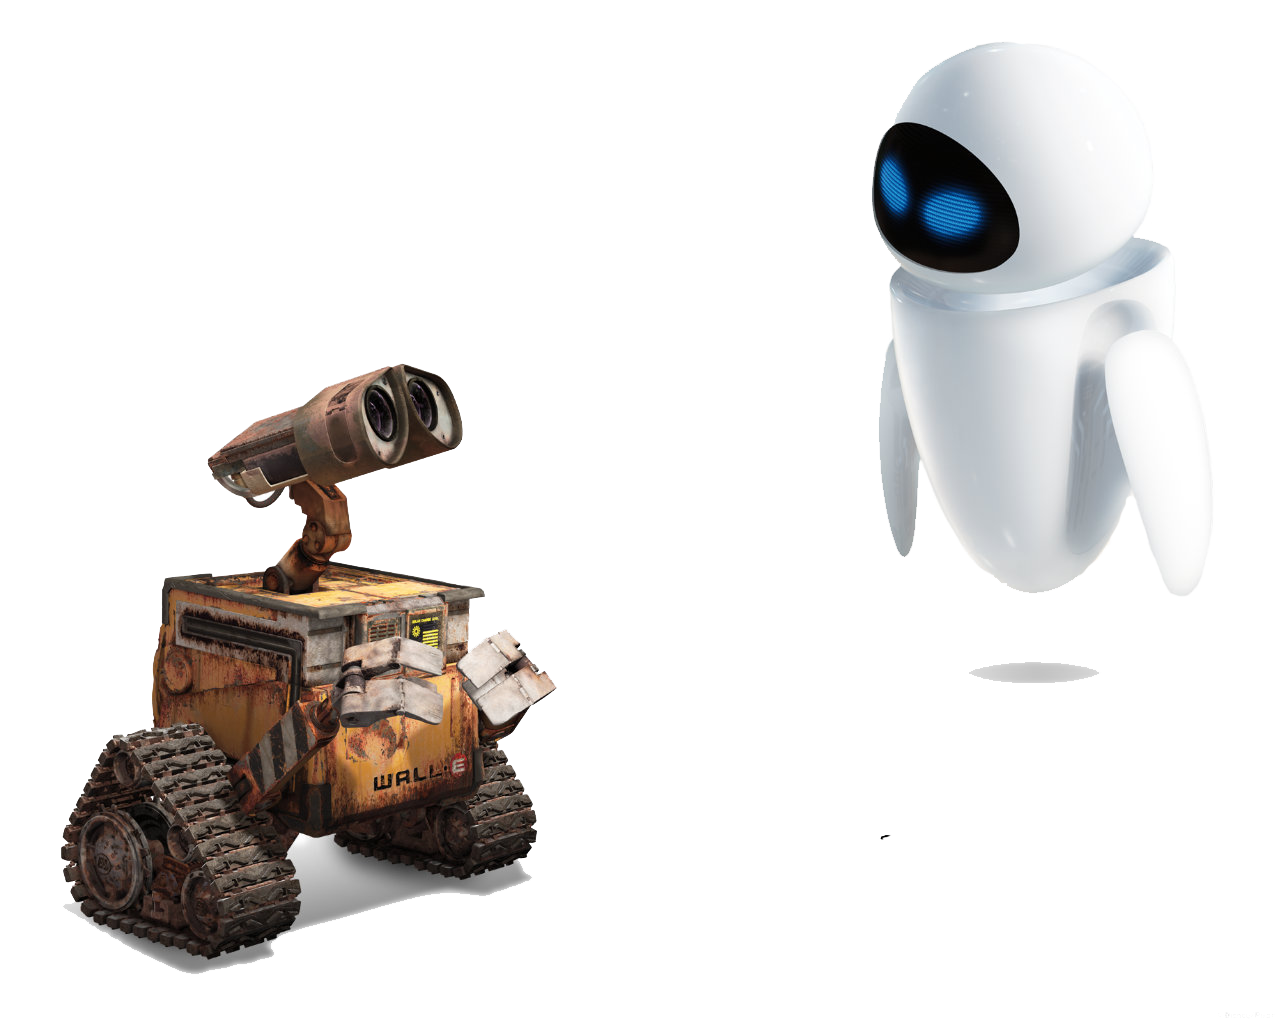 Wall-e png cartoon. Wall e images transparent